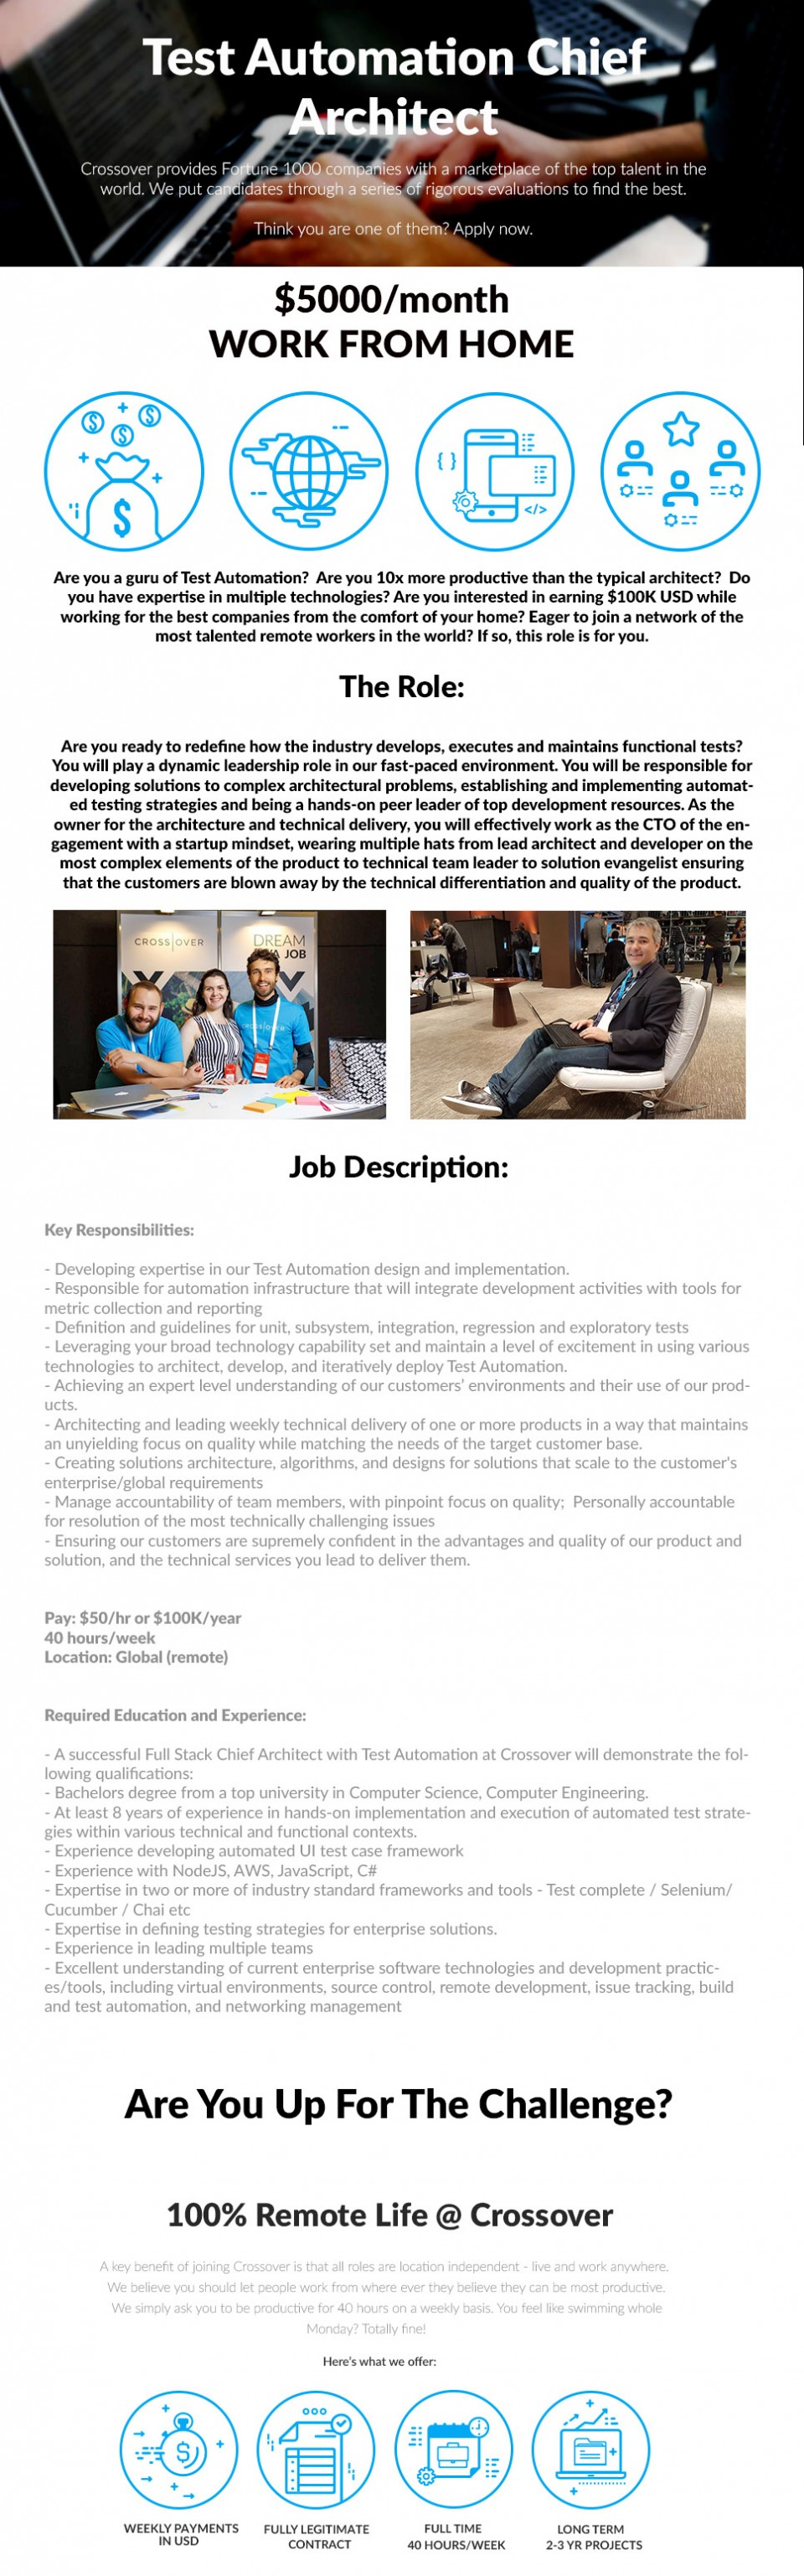 Crossover is redefining the way people work. Brick and mortar offices are history. The future of our global workforce will be built from teams collaborating from every corner of the world. We have embarked on an expedition to find and engage with that talent. Crossover has developed a unique method of finding, curating, and managing remote contractors. Our platform connects customers to the worlds best talent for both technical and non-technical employment. But we don't just find the best, we also provide the tools, training, and relationship building support to ensure success for long term growth.